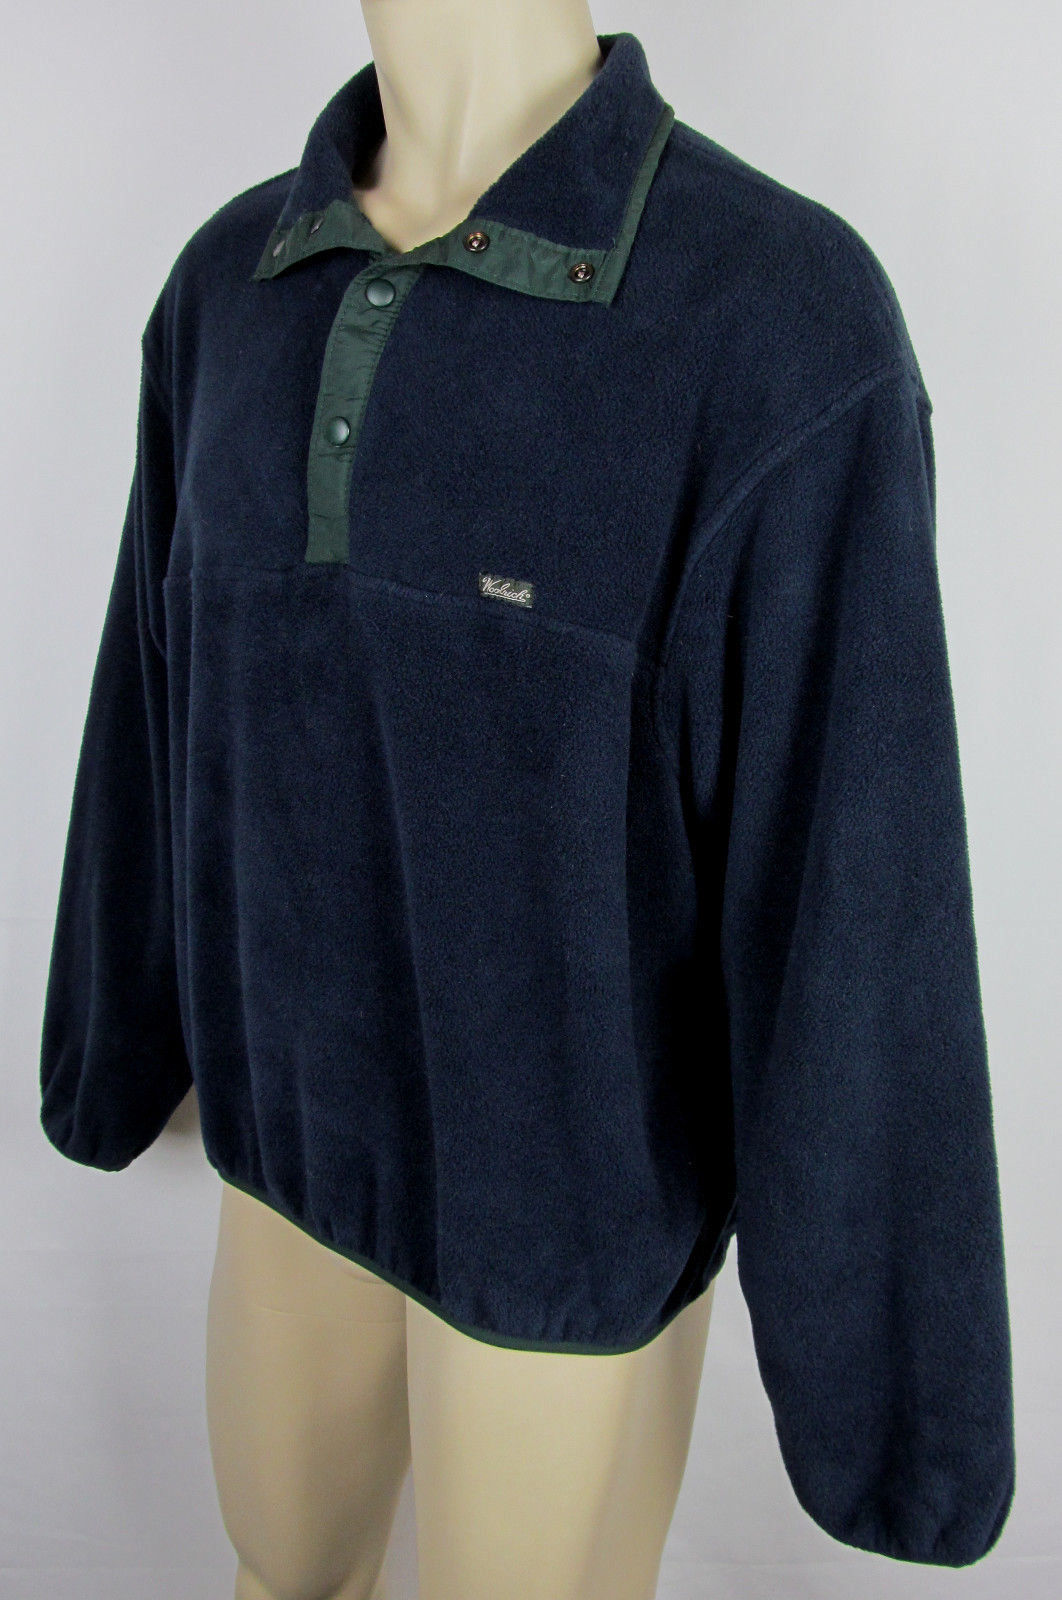 Woolrich Snap-T fleece jacket USA Made Navy Blue Mens Size L image 2